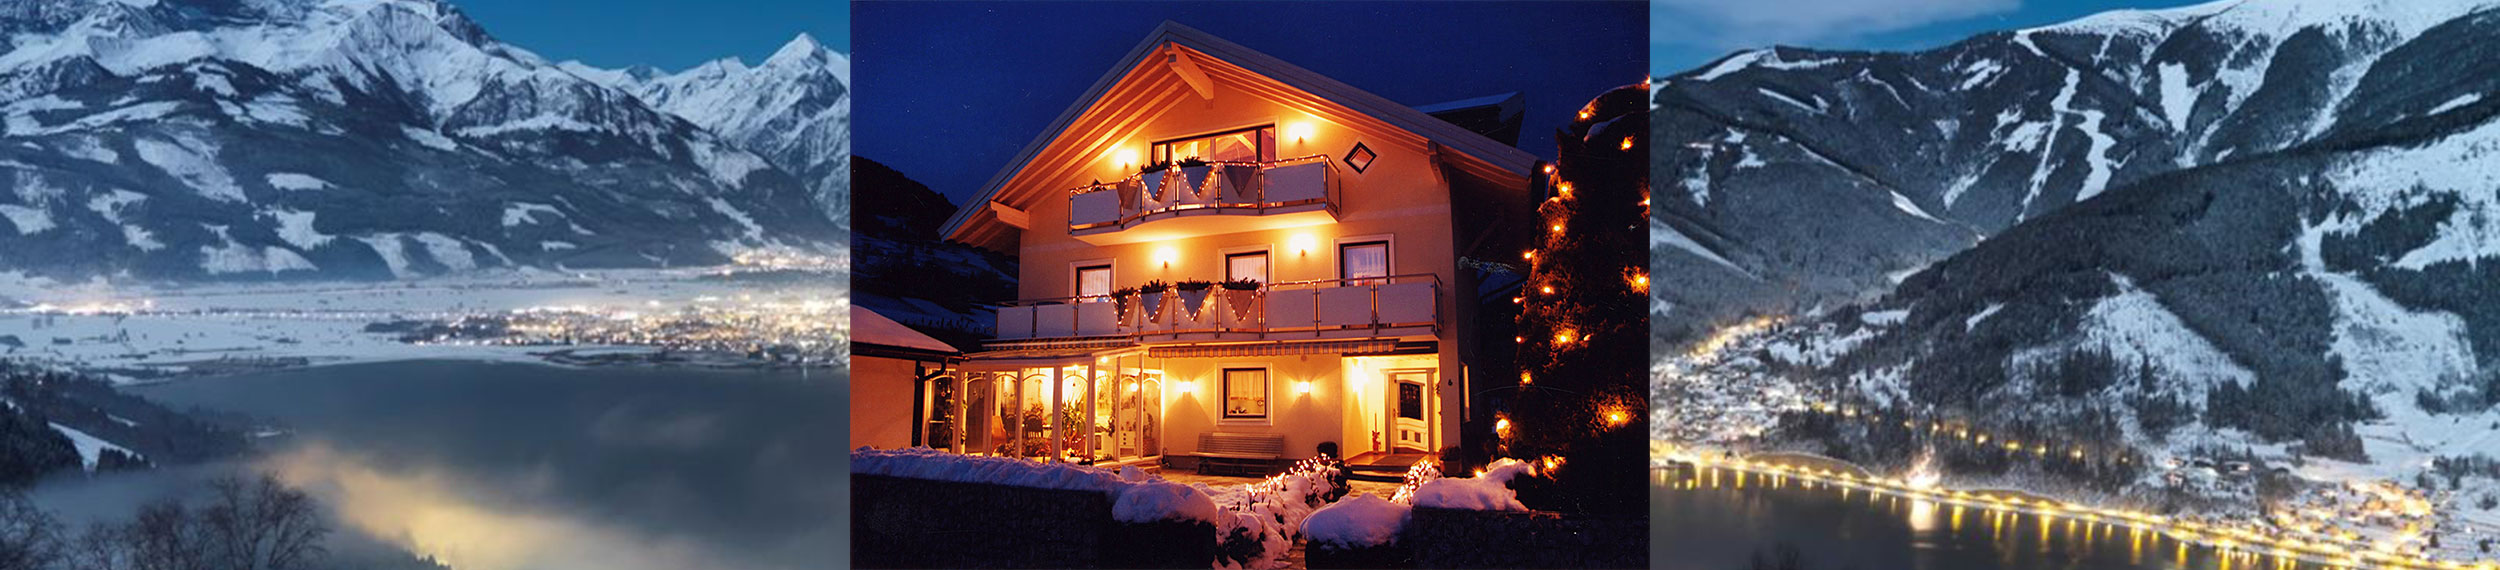 Appartement Haus Elise in Zell am See